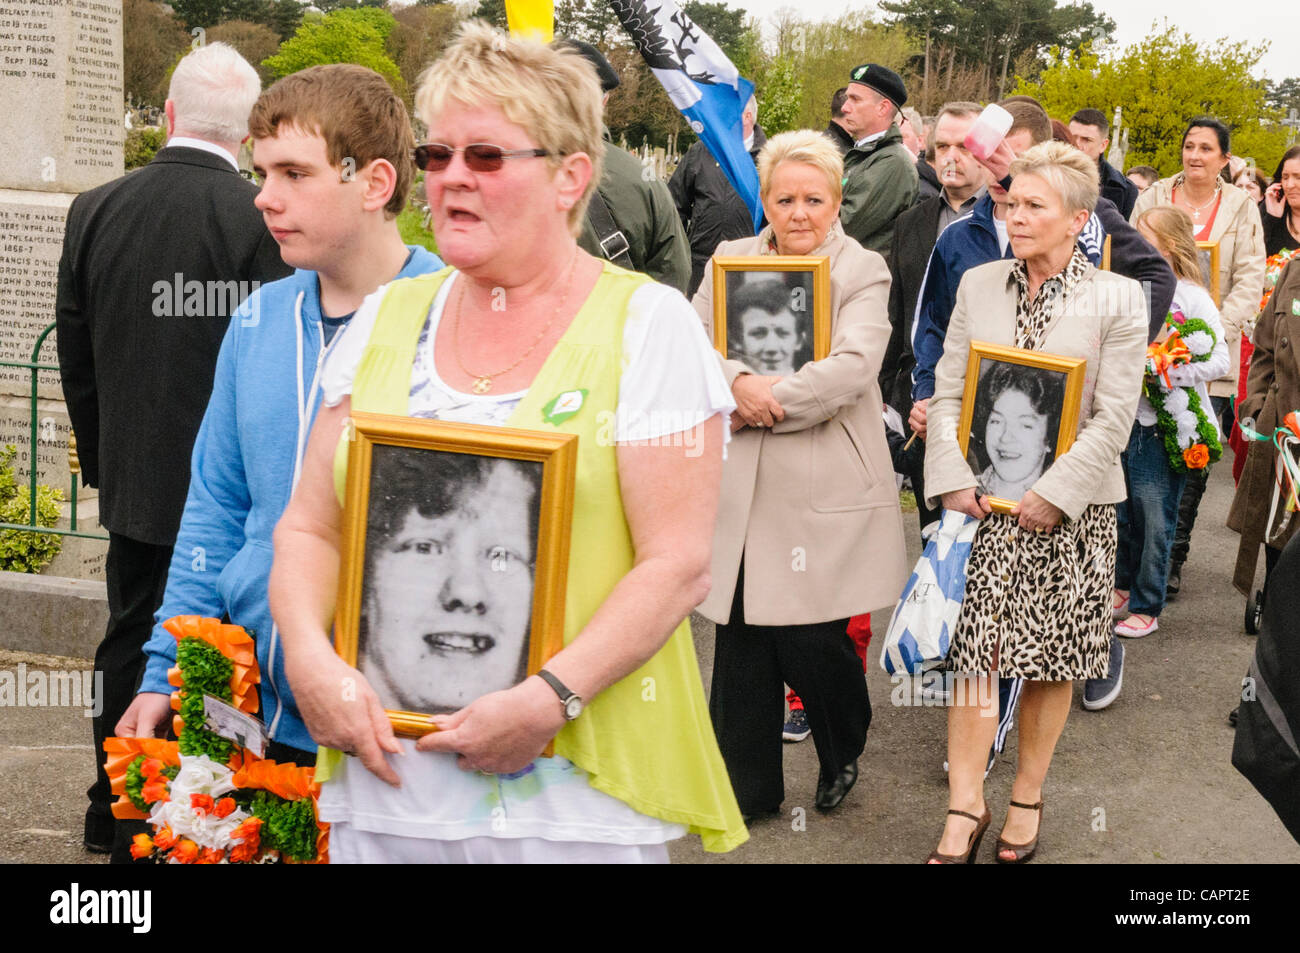 Relatives carry photographs of IRA members killed during the Troubles - Stock Image